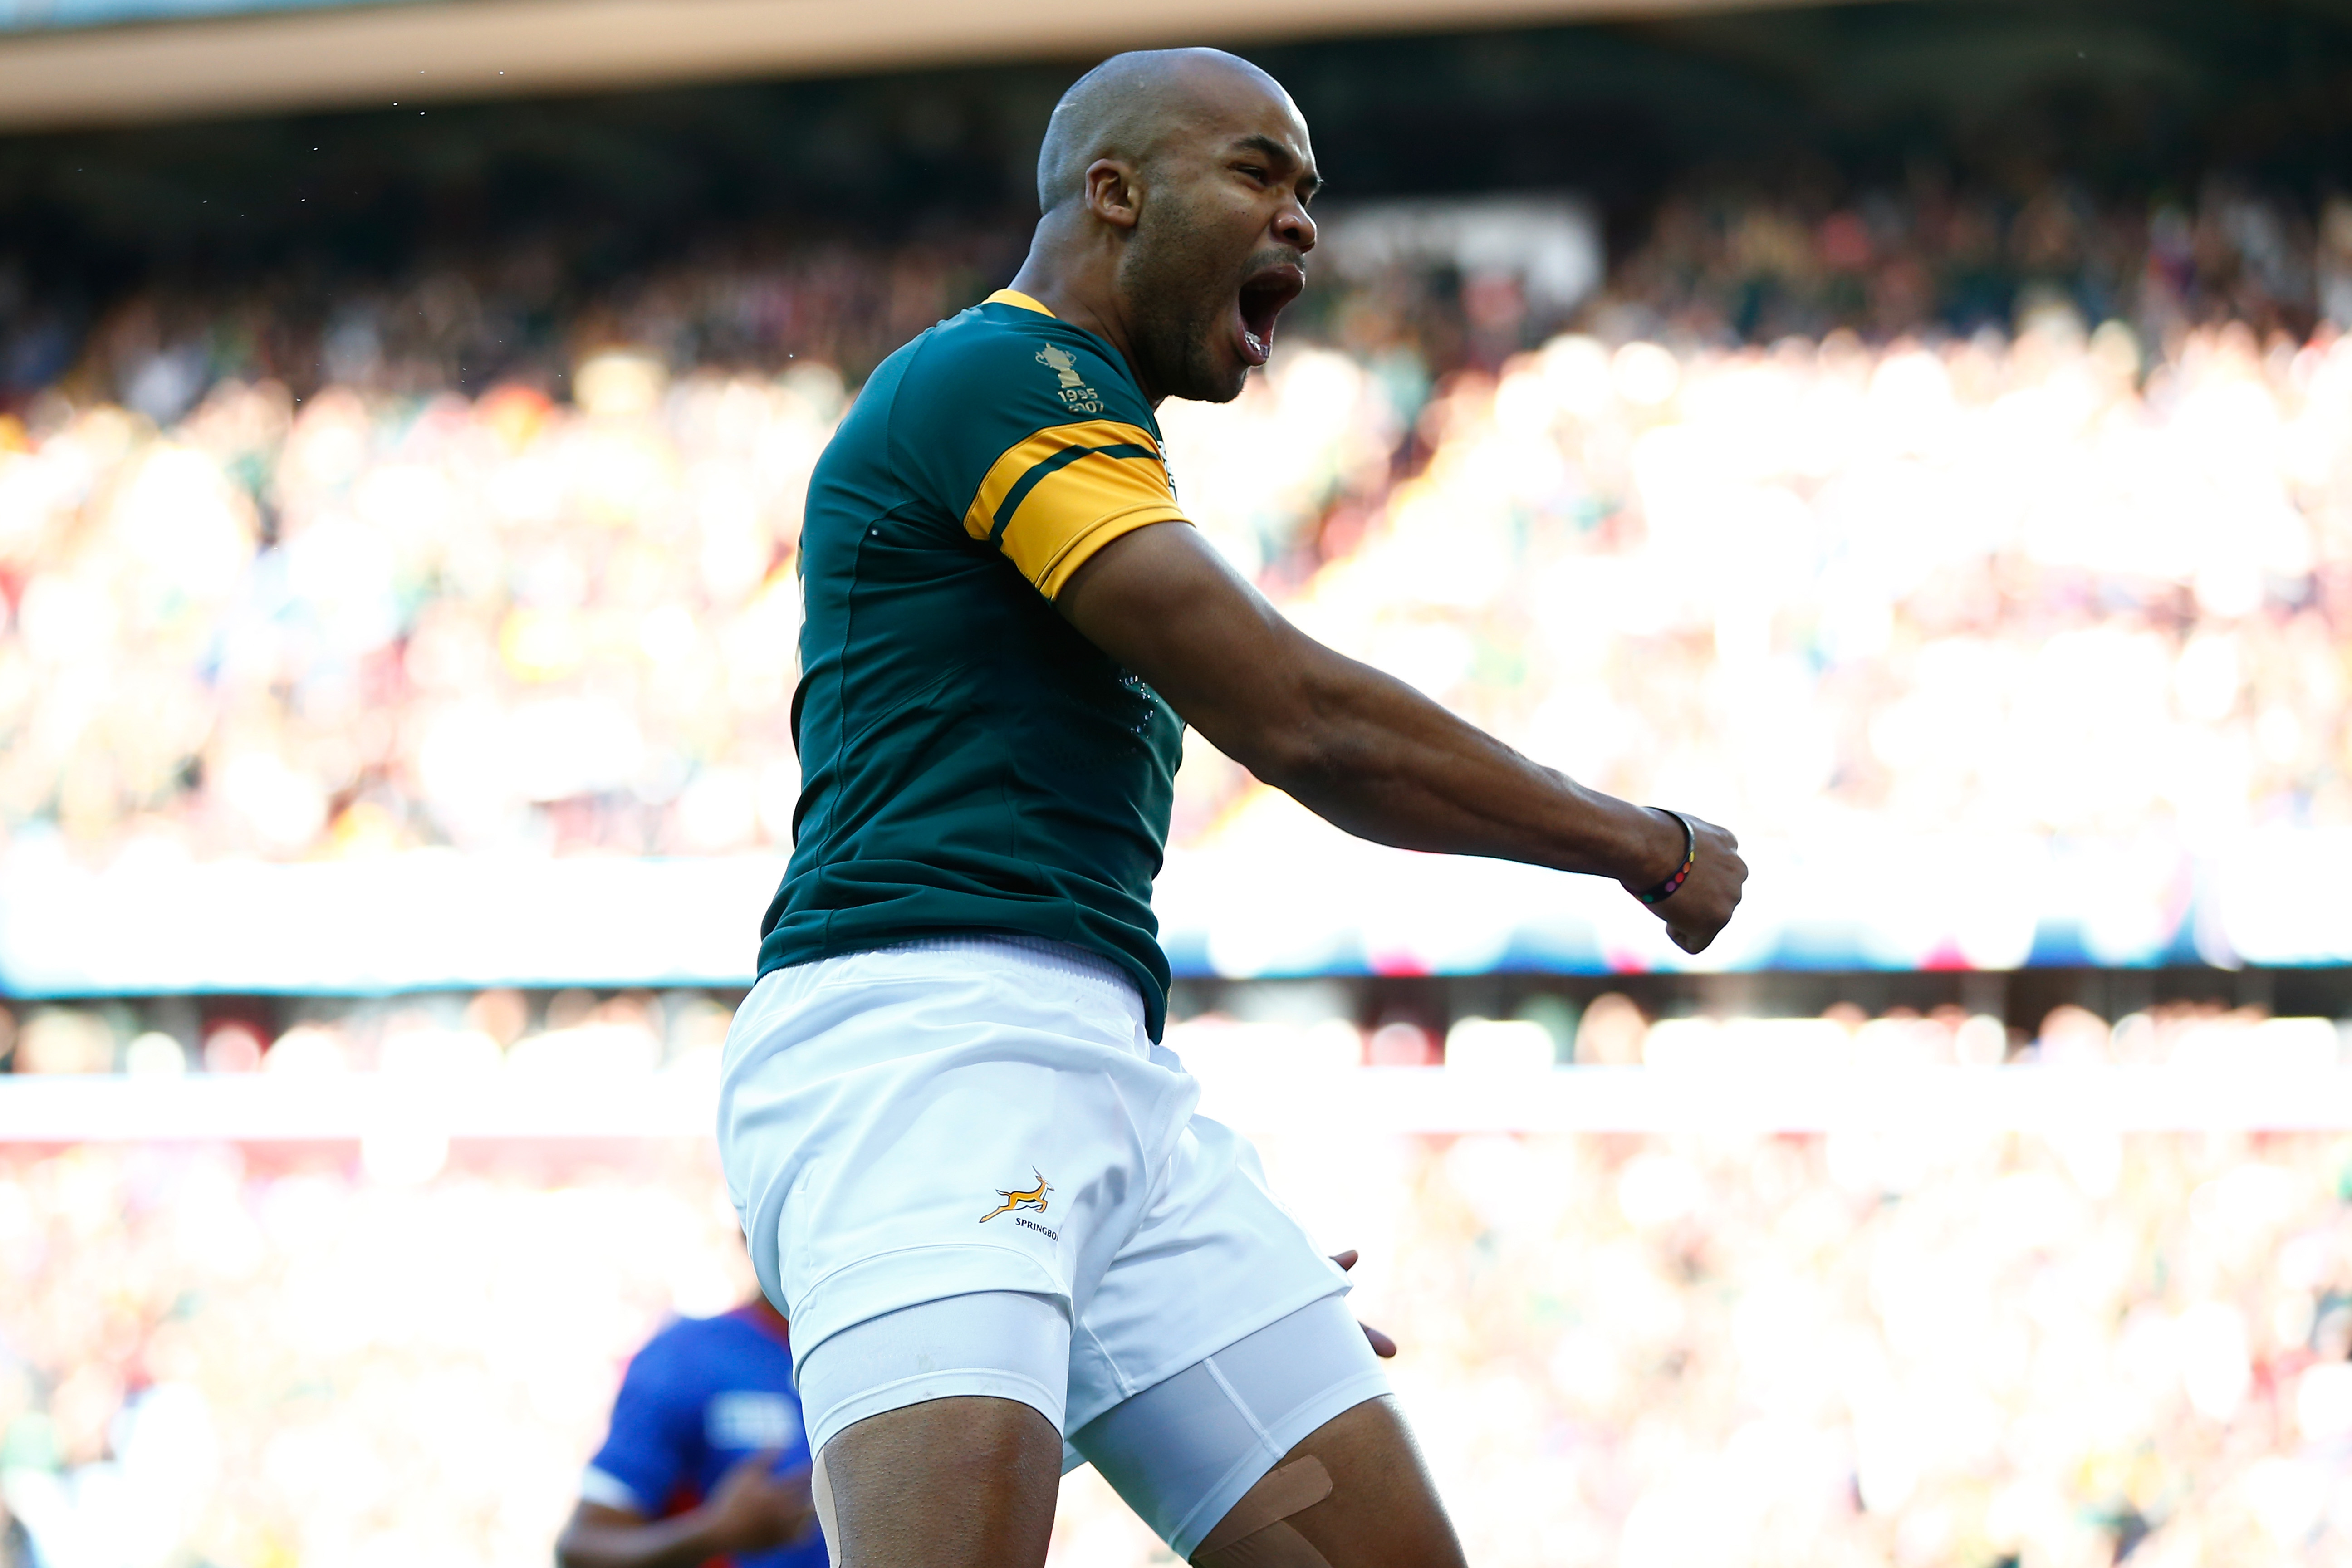 BIRMINGHAM, ENGLAND - SEPTEMBER 26: JP Pietersen of South Africa celebrates scoring the opening try during the 2015 Rugby World Cup Pool B match between South Africa and Samoa at Villa Park on September 26, 2015 in Birmingham, United Kingdom. (Photo by Laurence Griffiths/Getty Images)